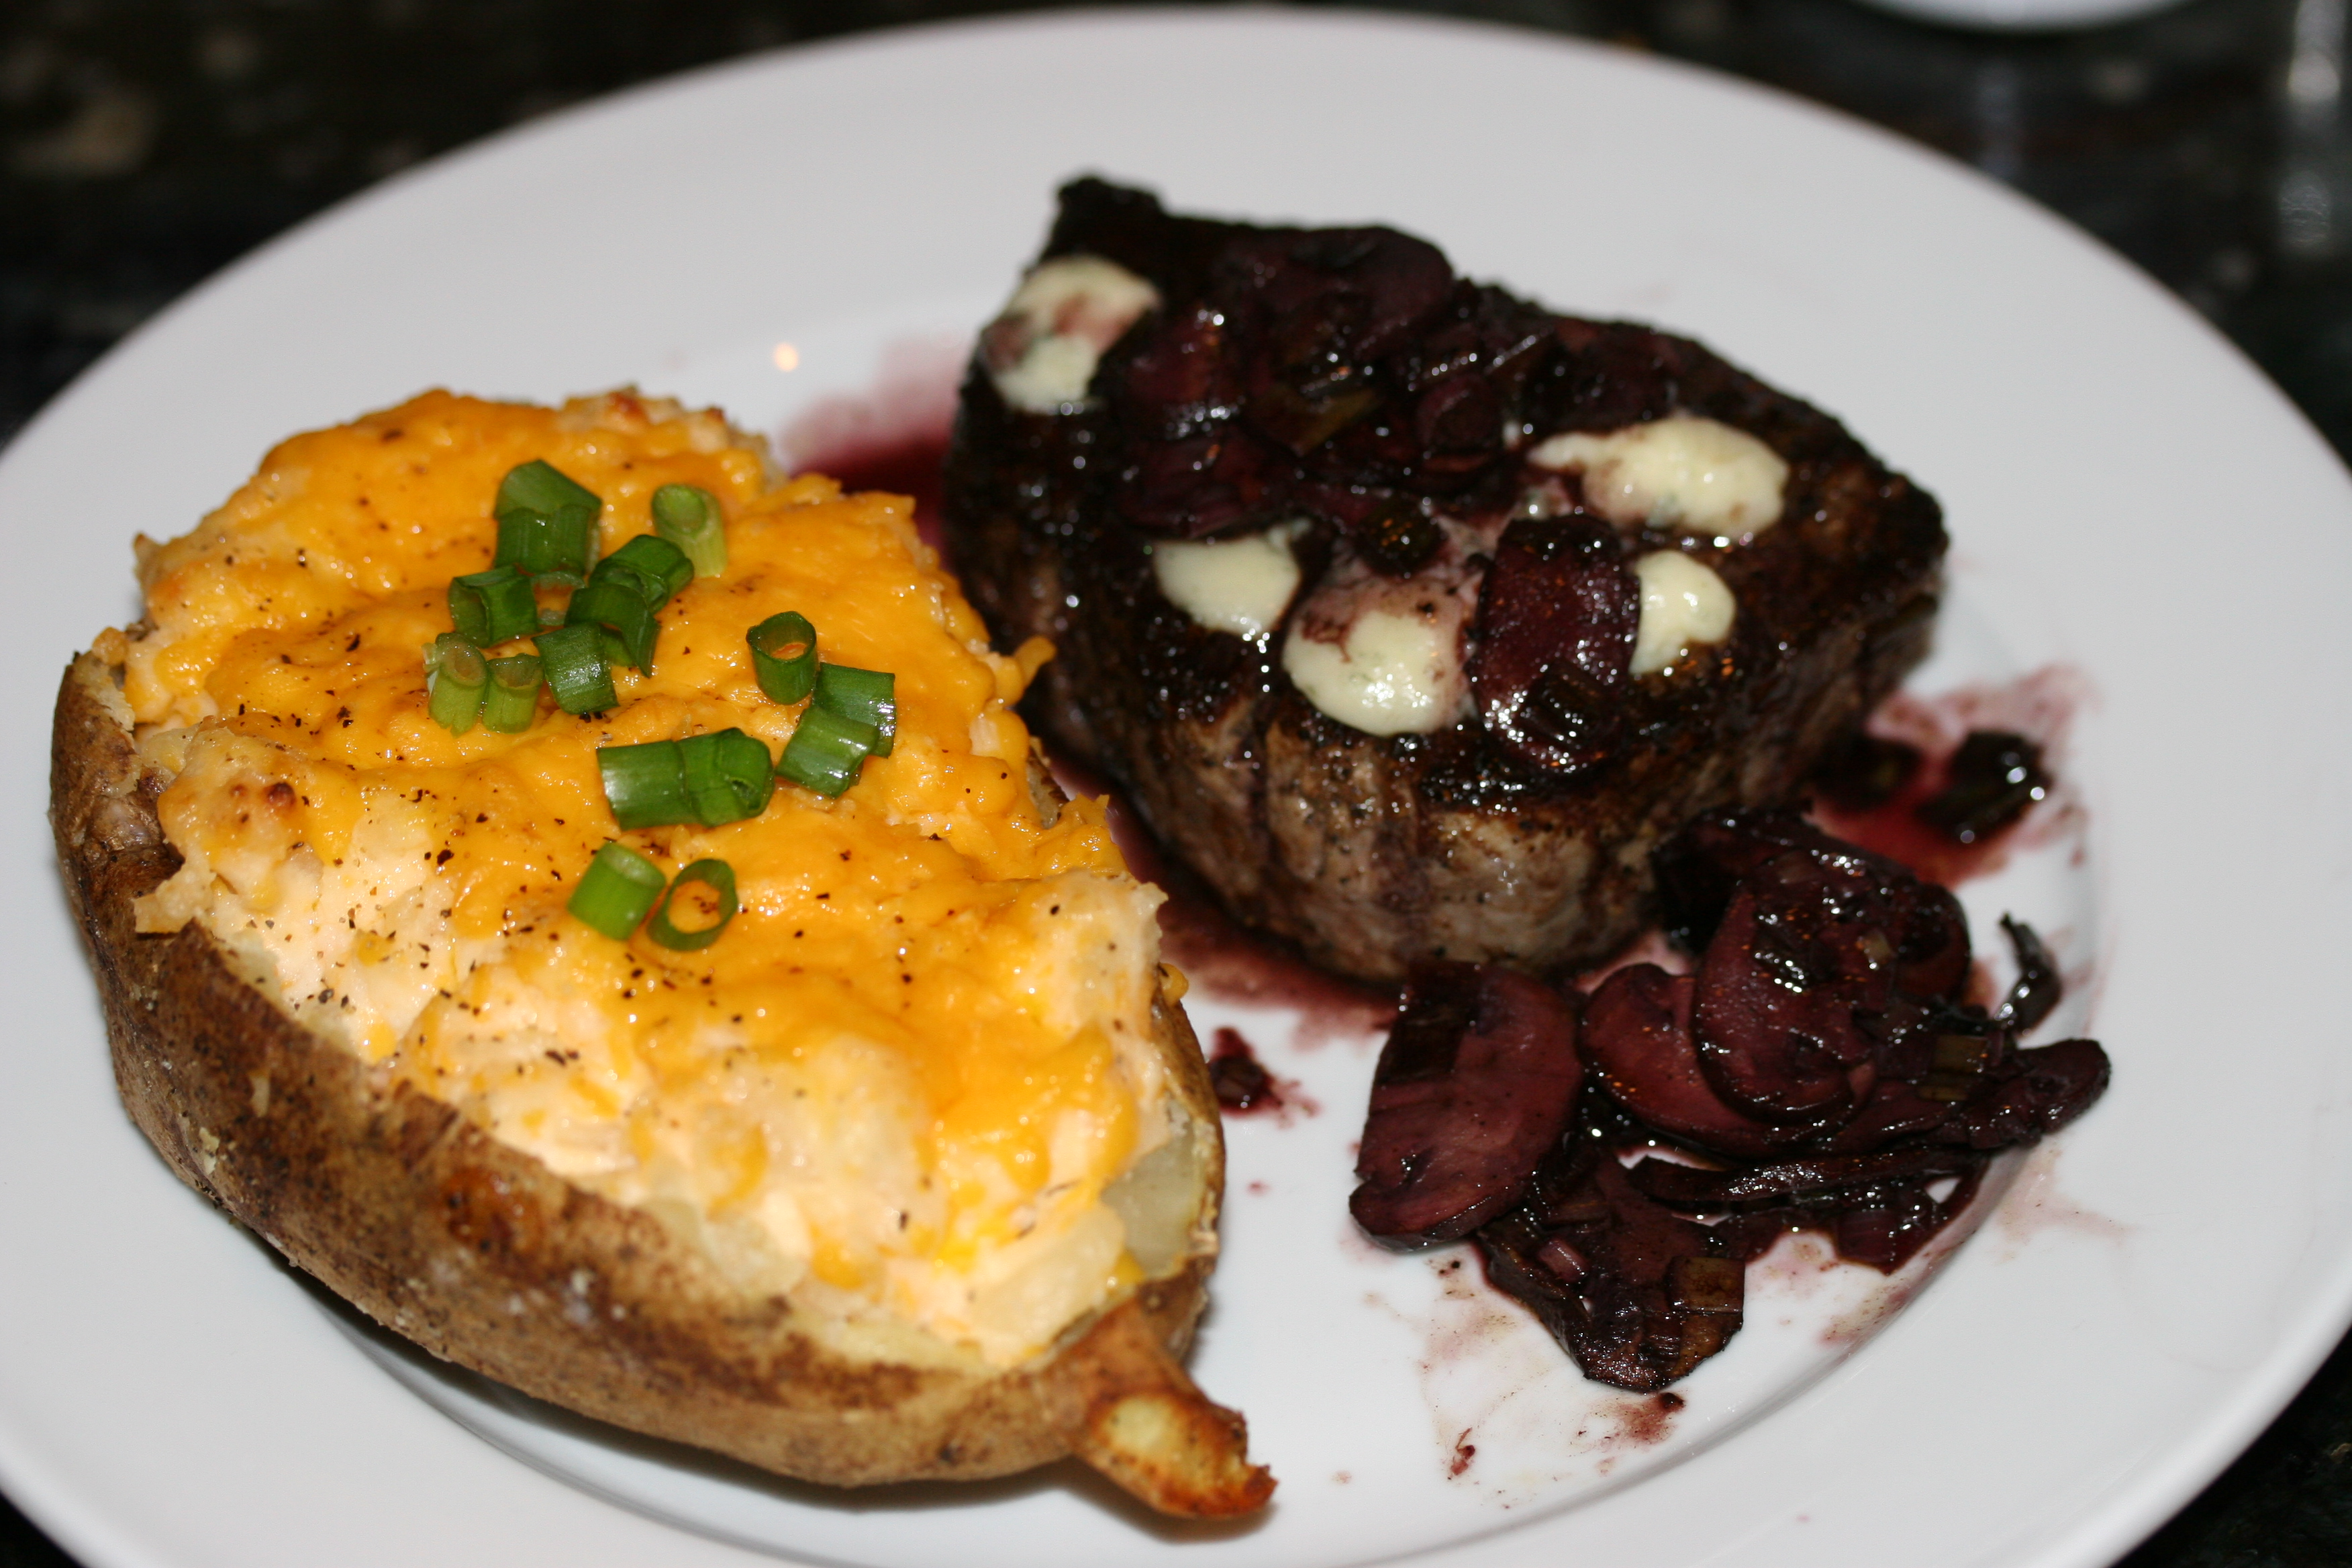 Filet Mignon, Twice Baked Potato, and Blue Cheese Wedge Salad ...